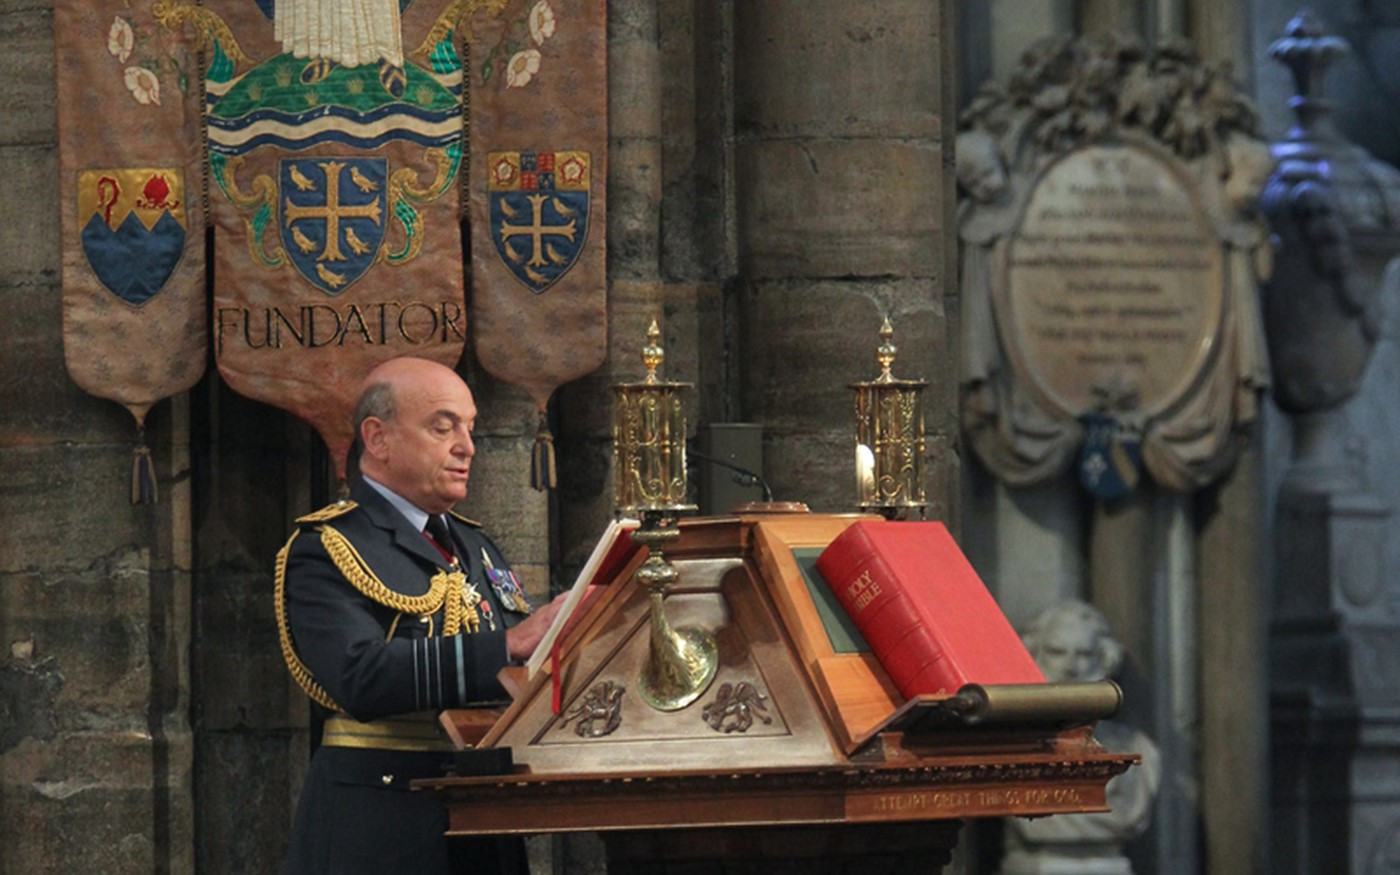 Air Chief Marshal Sir Stuart Peach, Vice Chief of Defence Staff, reads from the Great Lectern